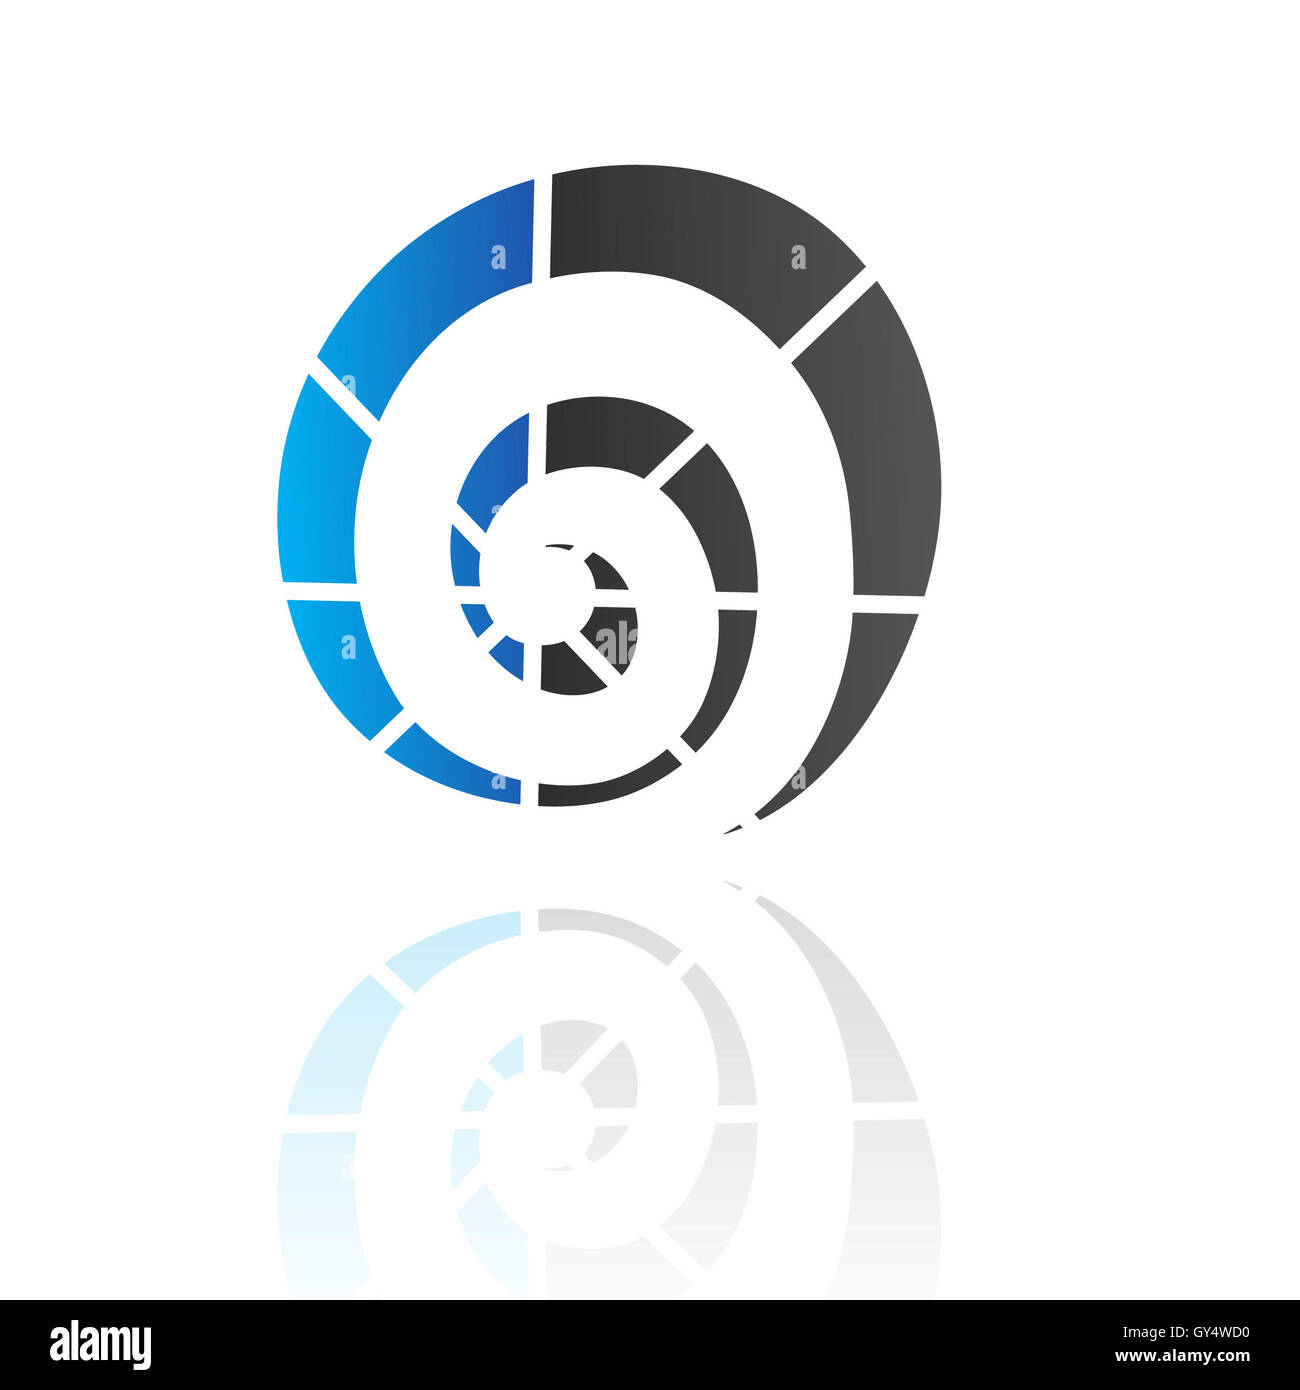 Abstract blue and black logo icon and design element - Stock Image